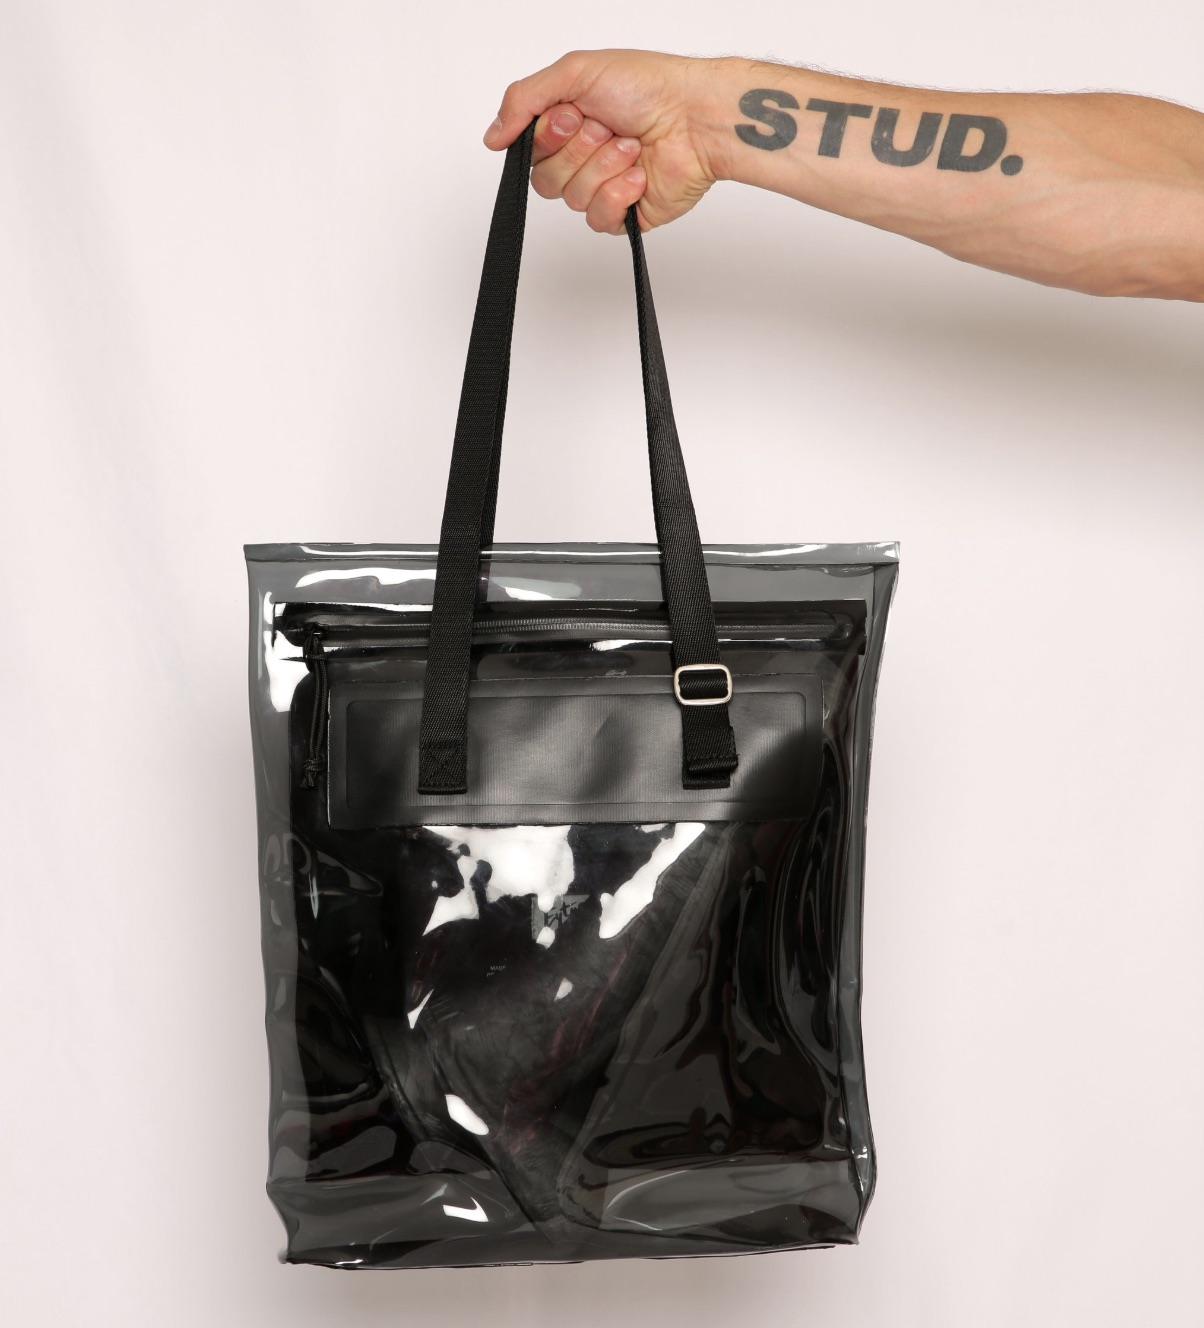 tom of finland store tote